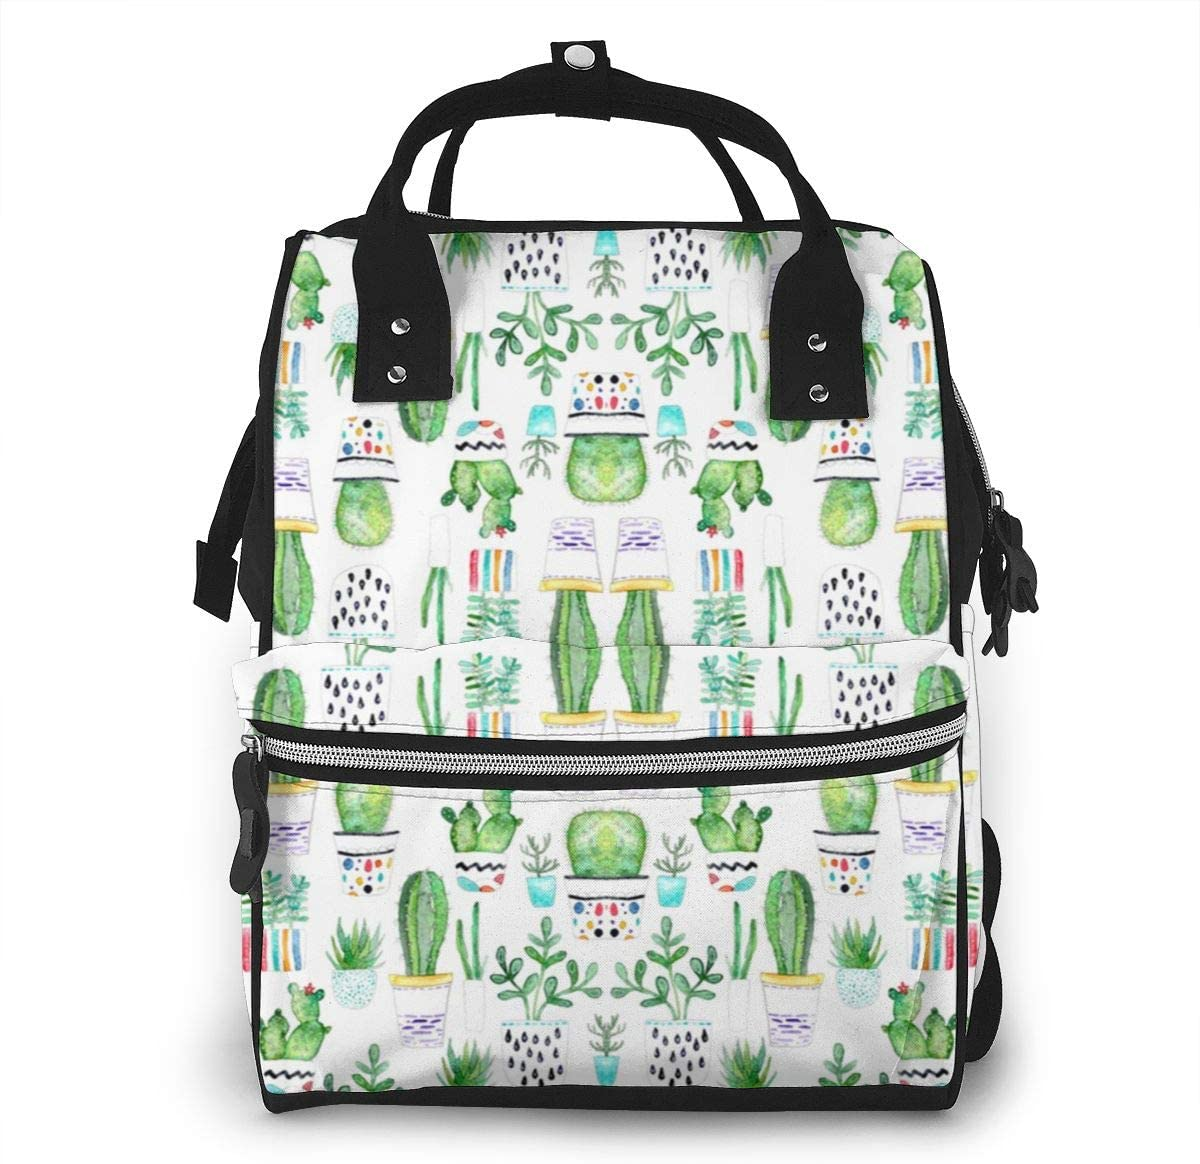 NiYoung Diaper Bag Organizer Insulated Waterproof Travel Nappy Backpack Large Capacity Tote Shoulder Nappy Bags for Mommy Backpack with Multi-Function,Durable and Stylish (Succulents Cactus)